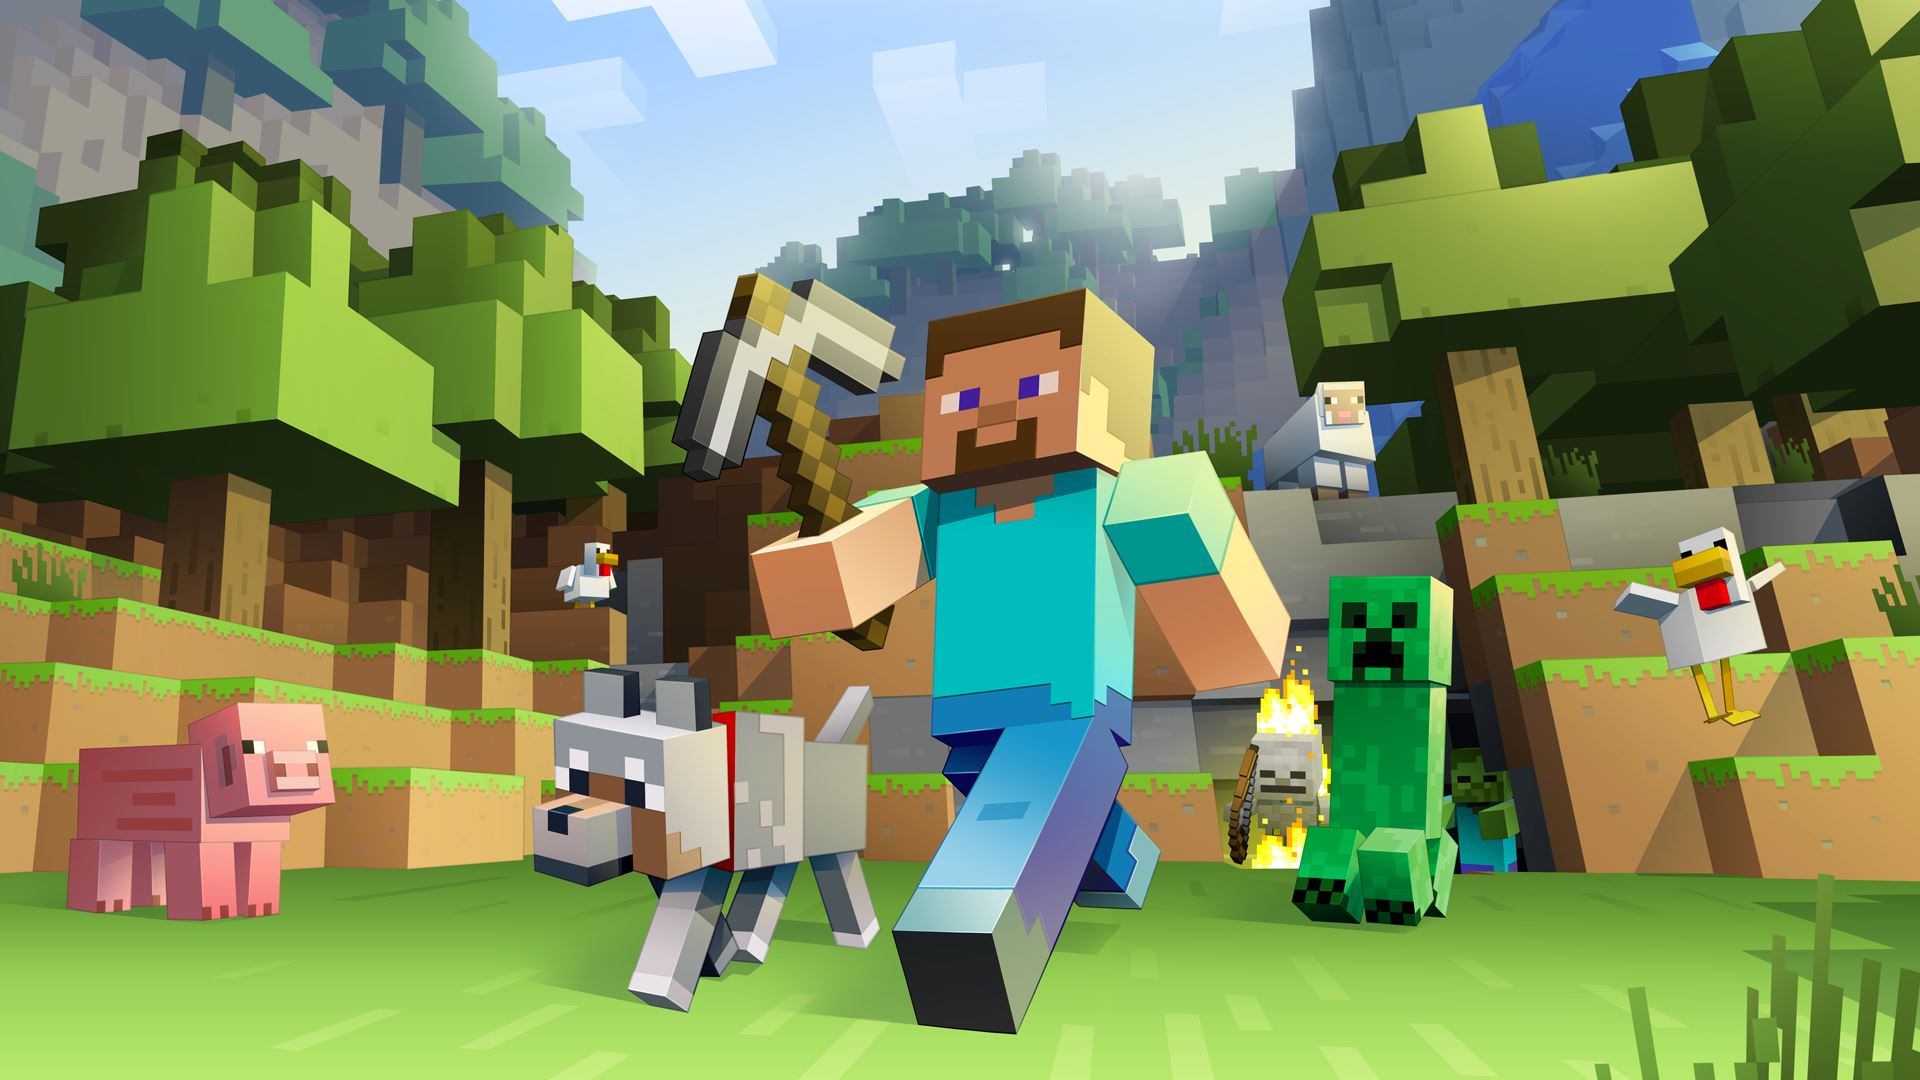 Minecraft Tops YouTube's Top 10 Most Streamed Video Games List